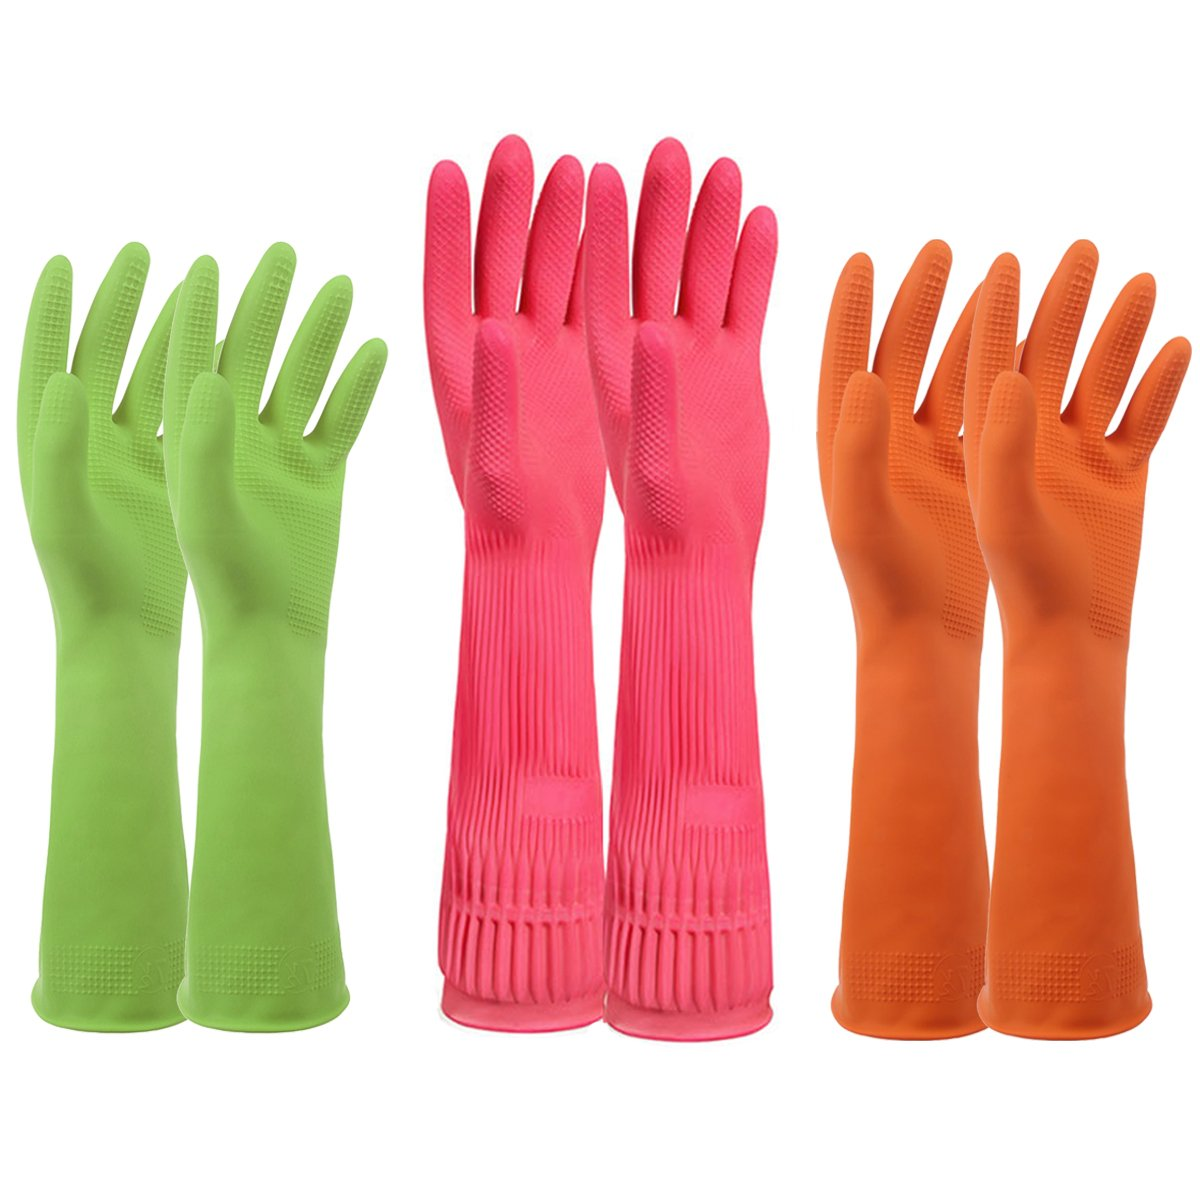 Household Rubber Latex Cleaning Gloves – PEGZOS Reusable Kitchen Natural Rubber Living Wash Gloves, with 3 Colors (Green, Orange, Pink)/3 Sizes (Small, Medium, Large) (M)